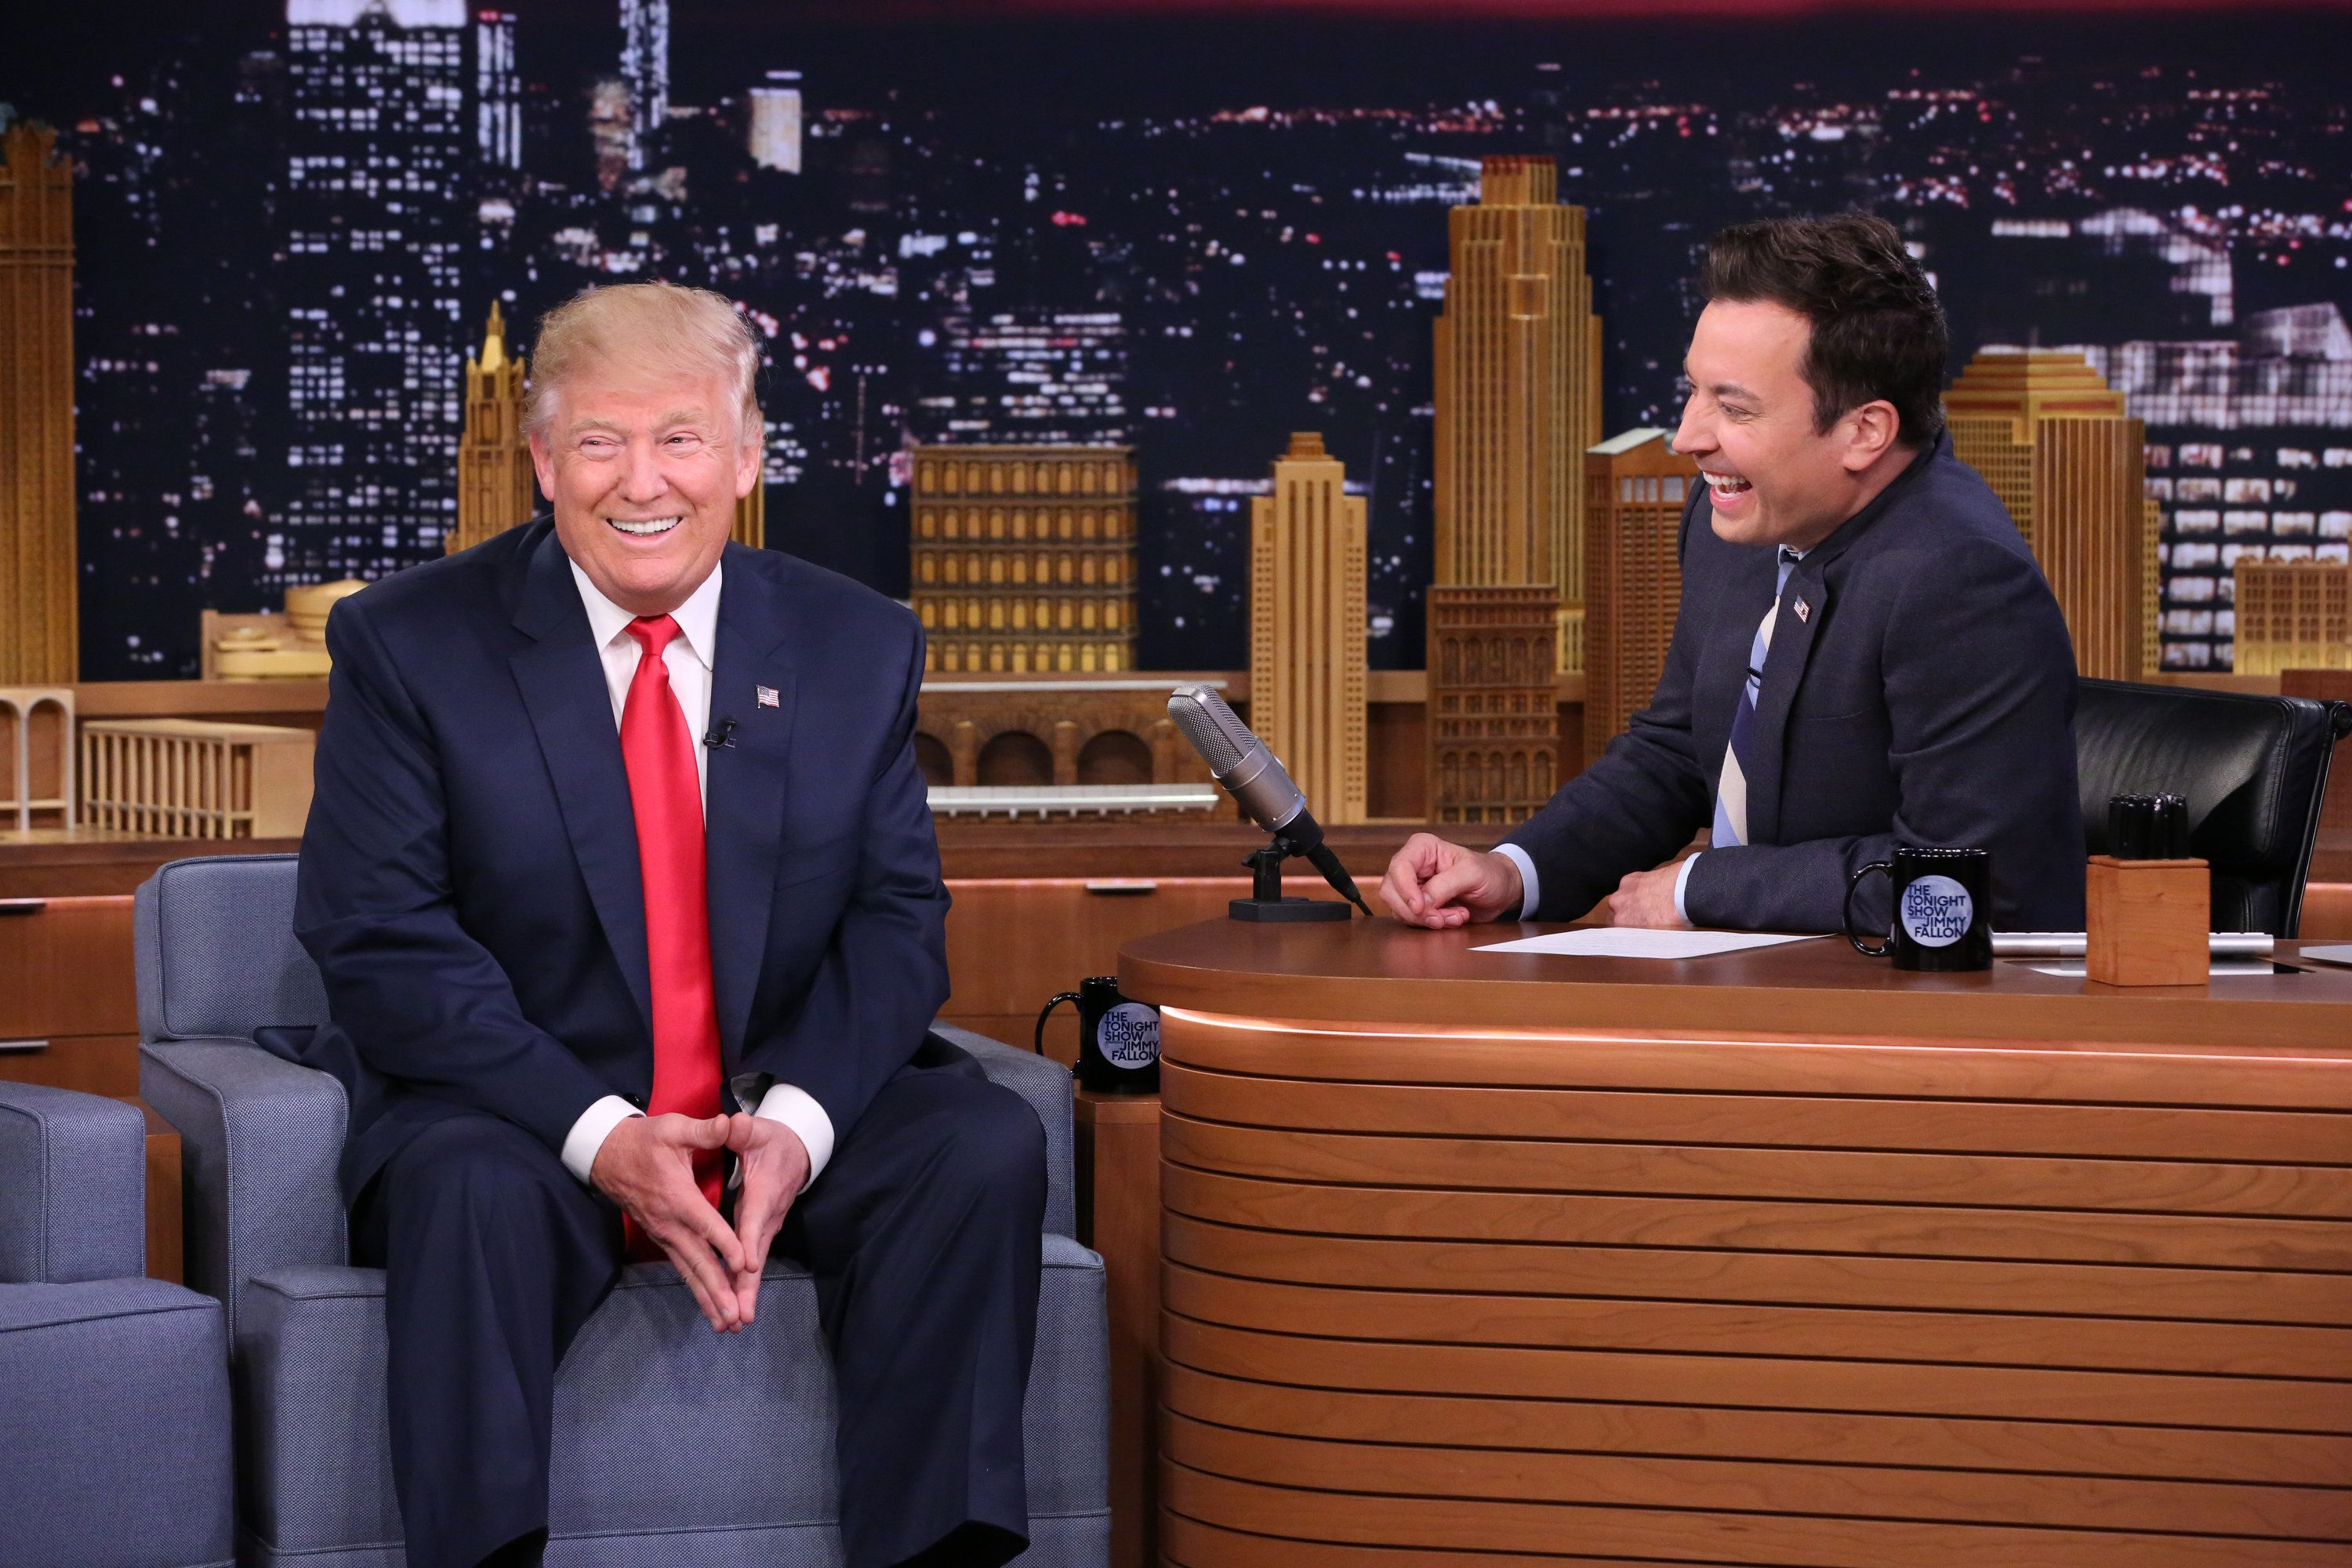 """Then-presidential candidate Donald Trump and Jimmy Fallon during a taping of """"The Tonight Show"""" on Sept. 15, 2016."""